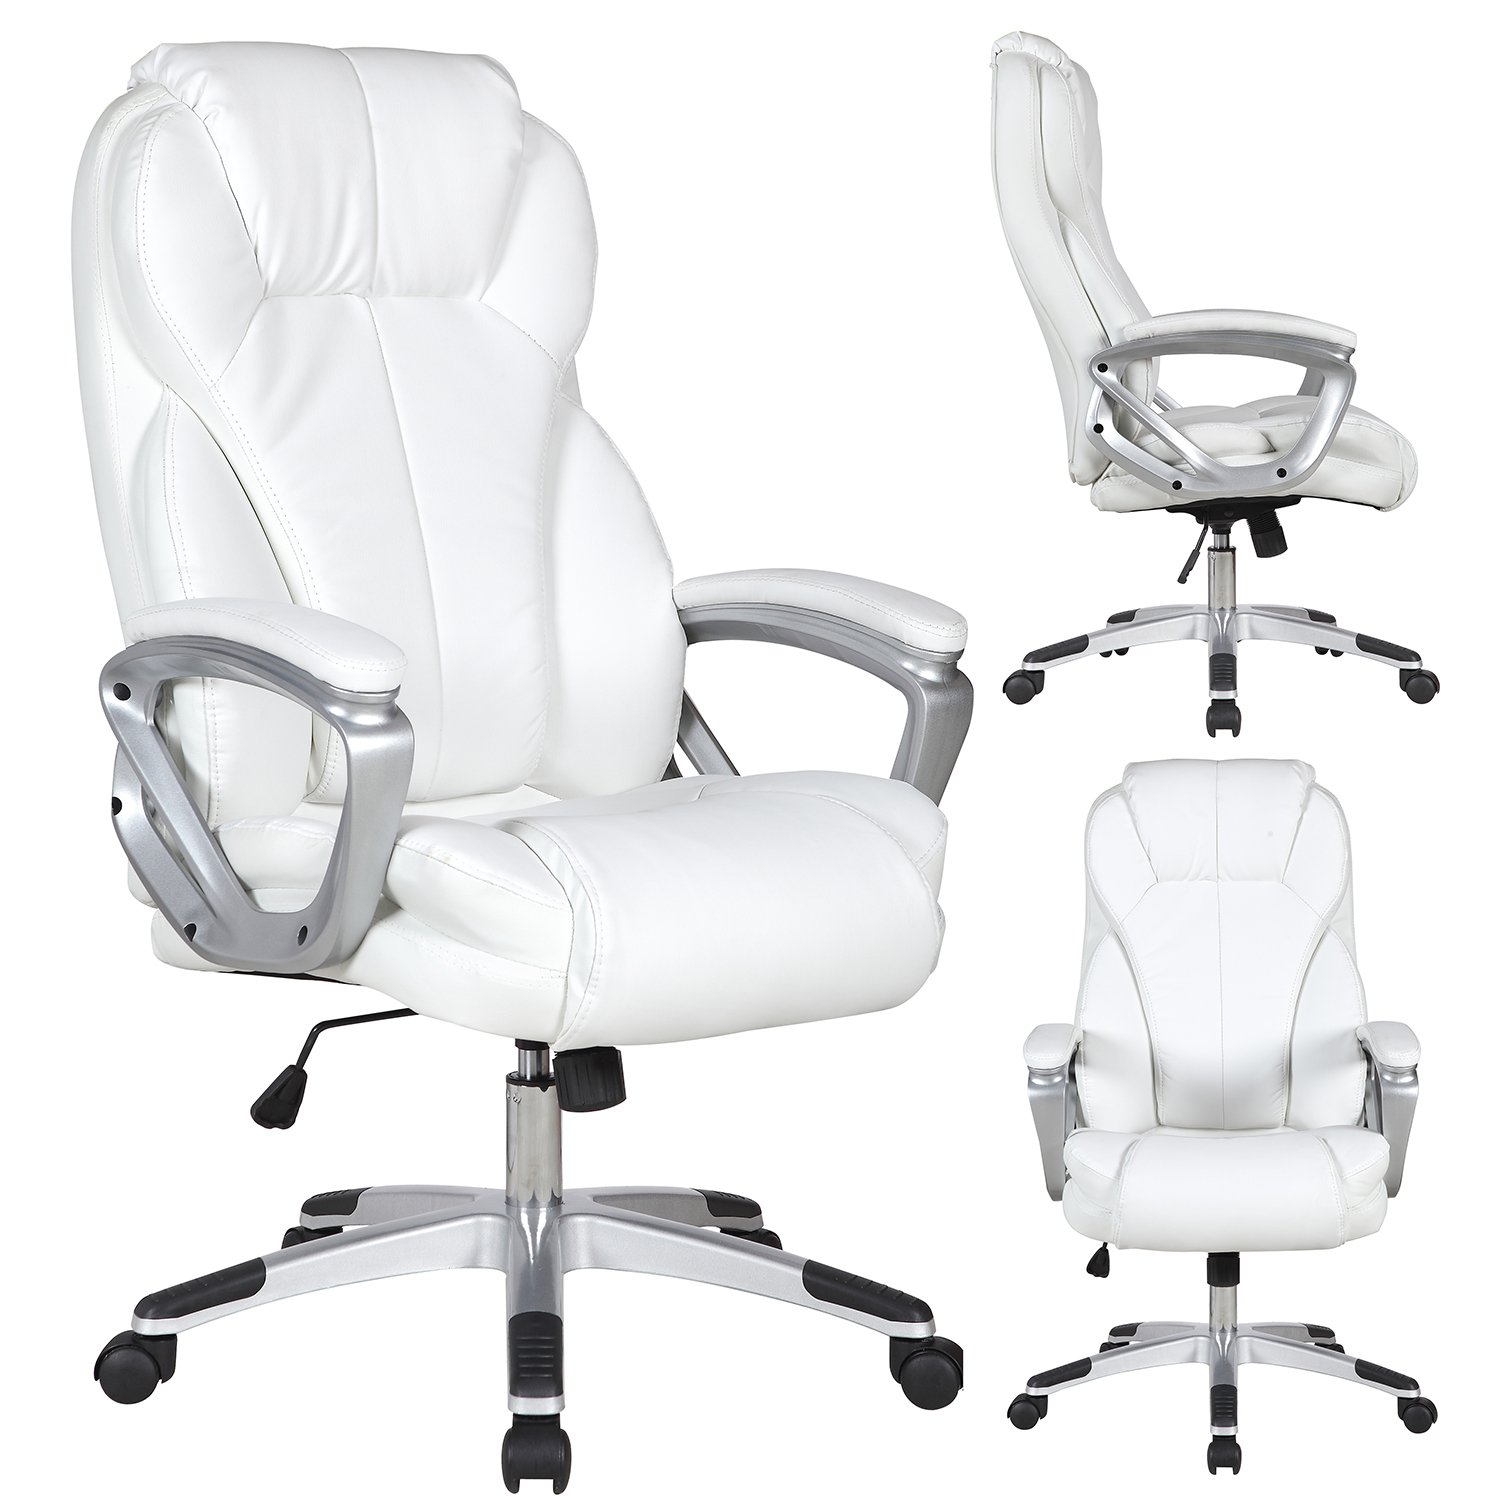 chair chairs hand office off white eco ergonomic second